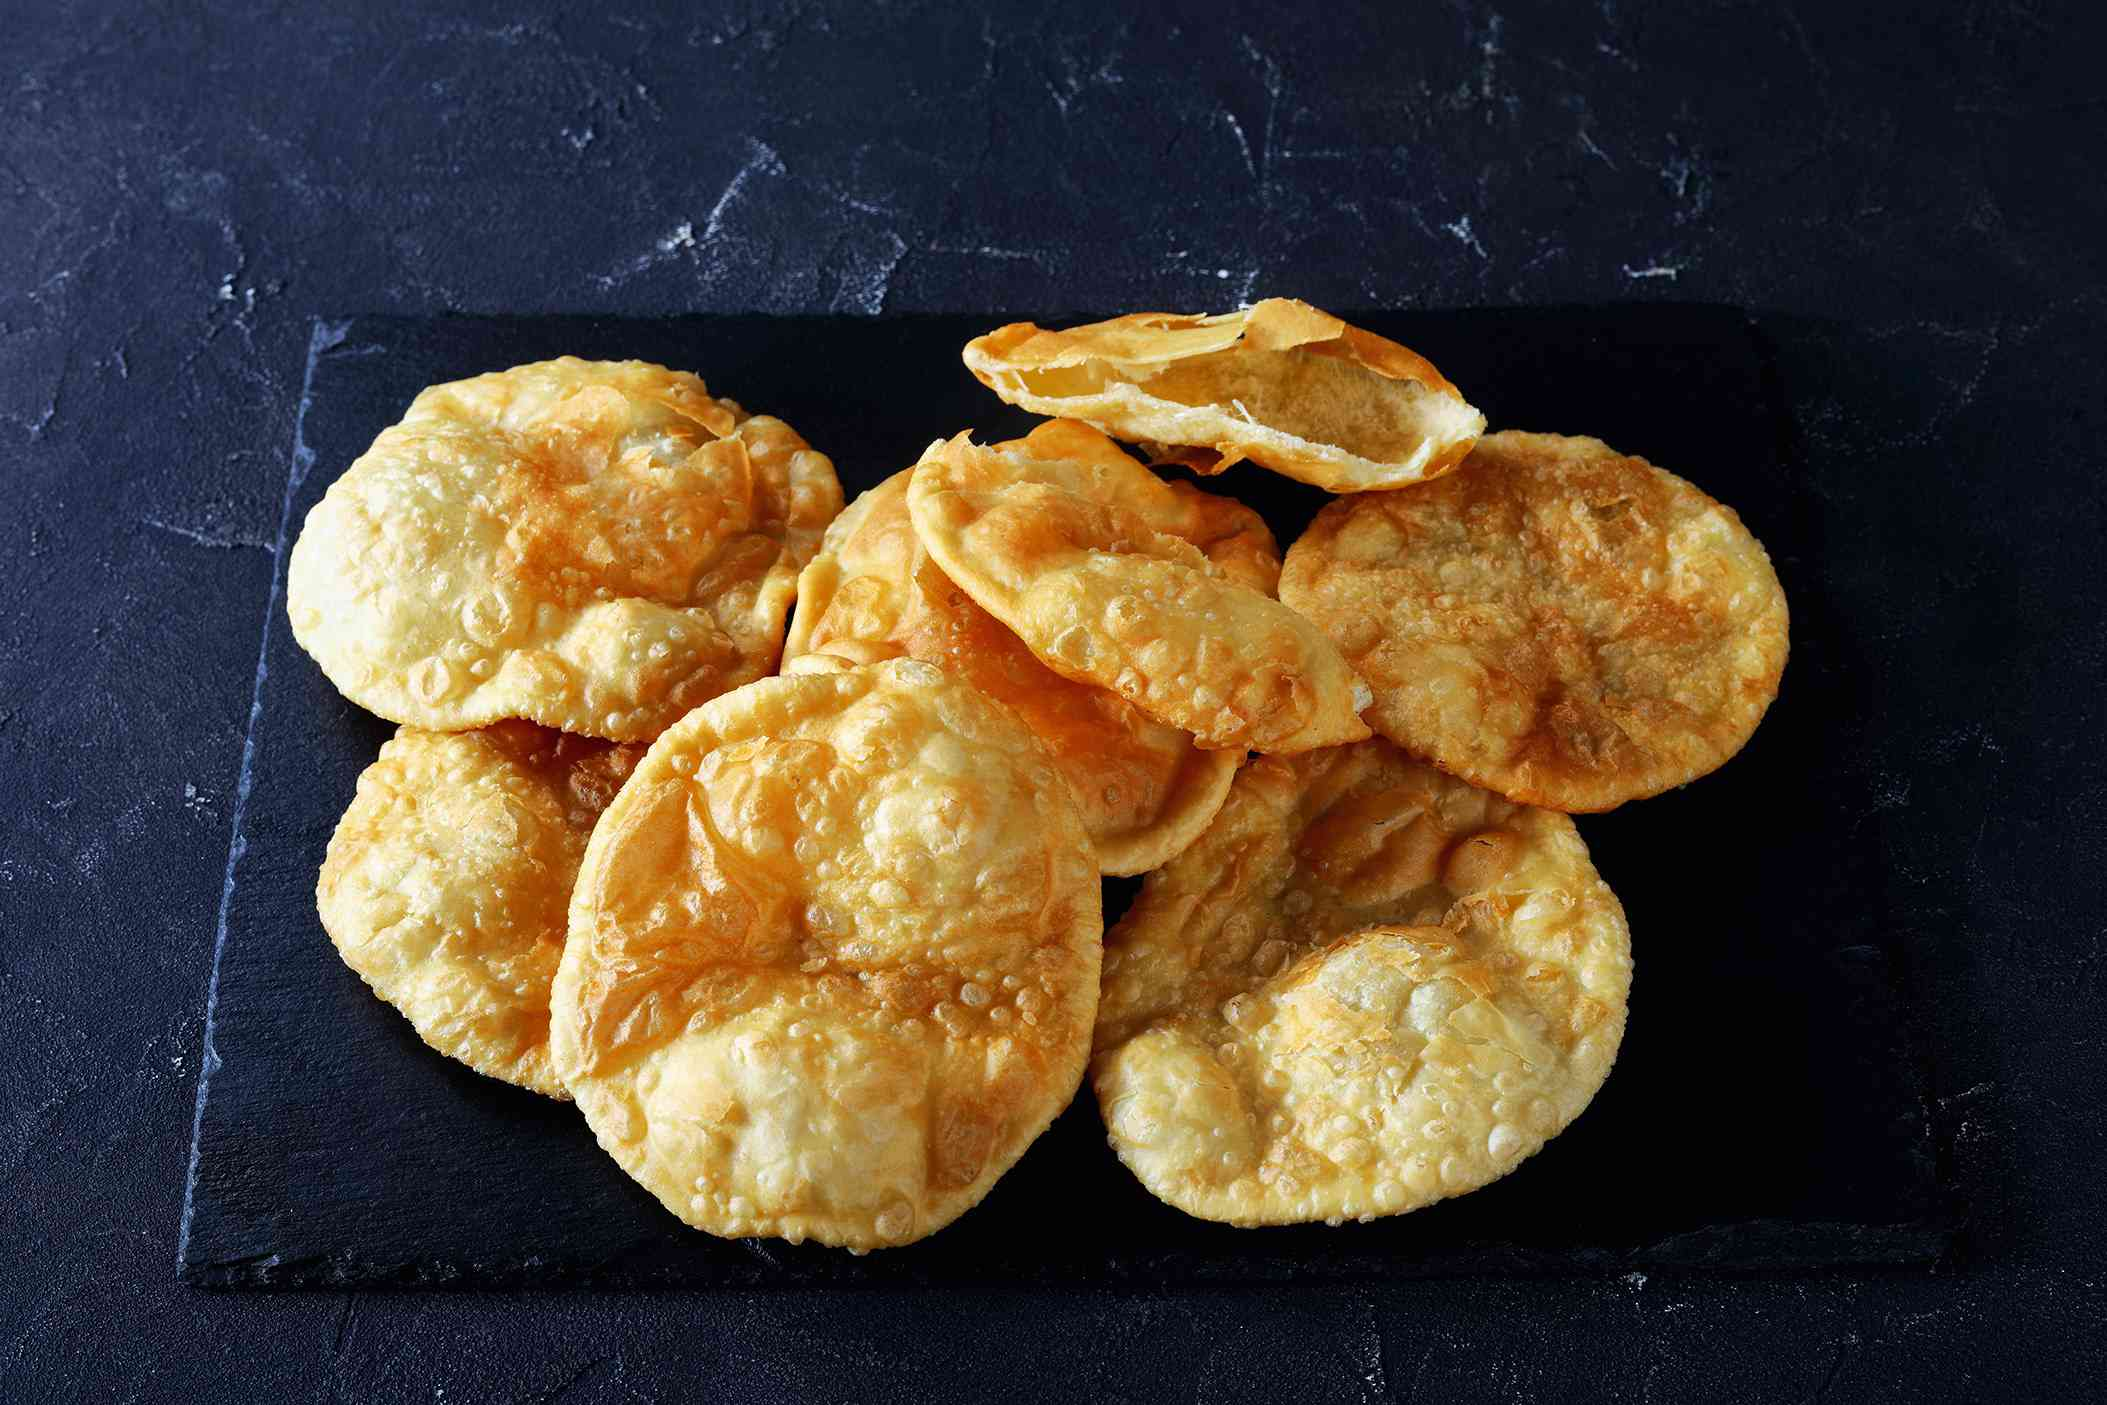 Bhatura Leavened Fried Indian Bread